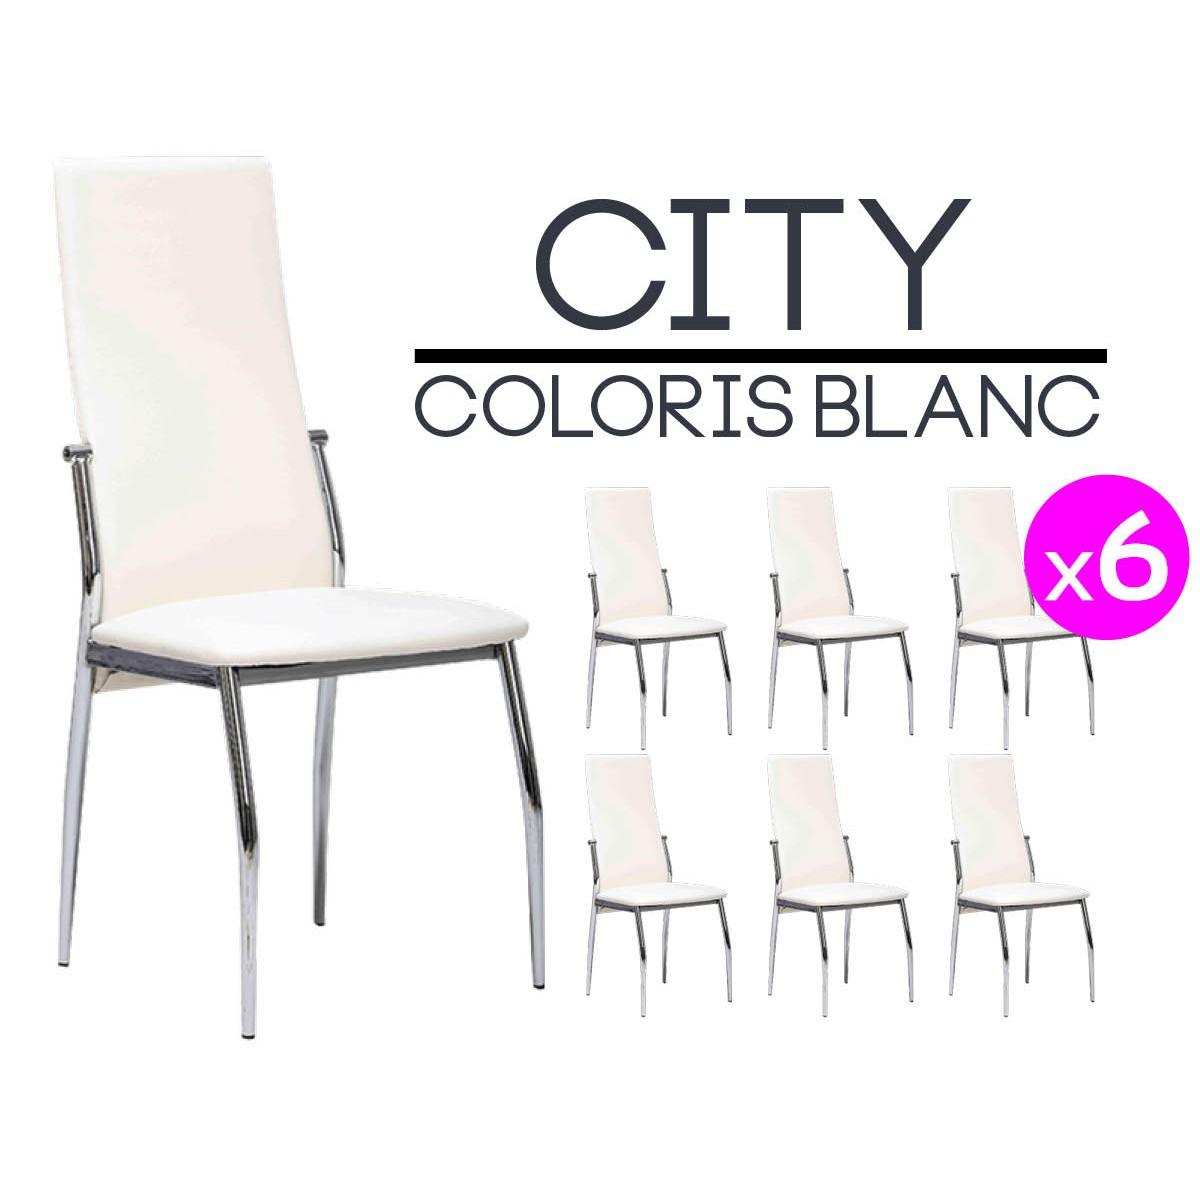 City lot 6 chaises blanches neuf ebay - 6 chaises blanches ...